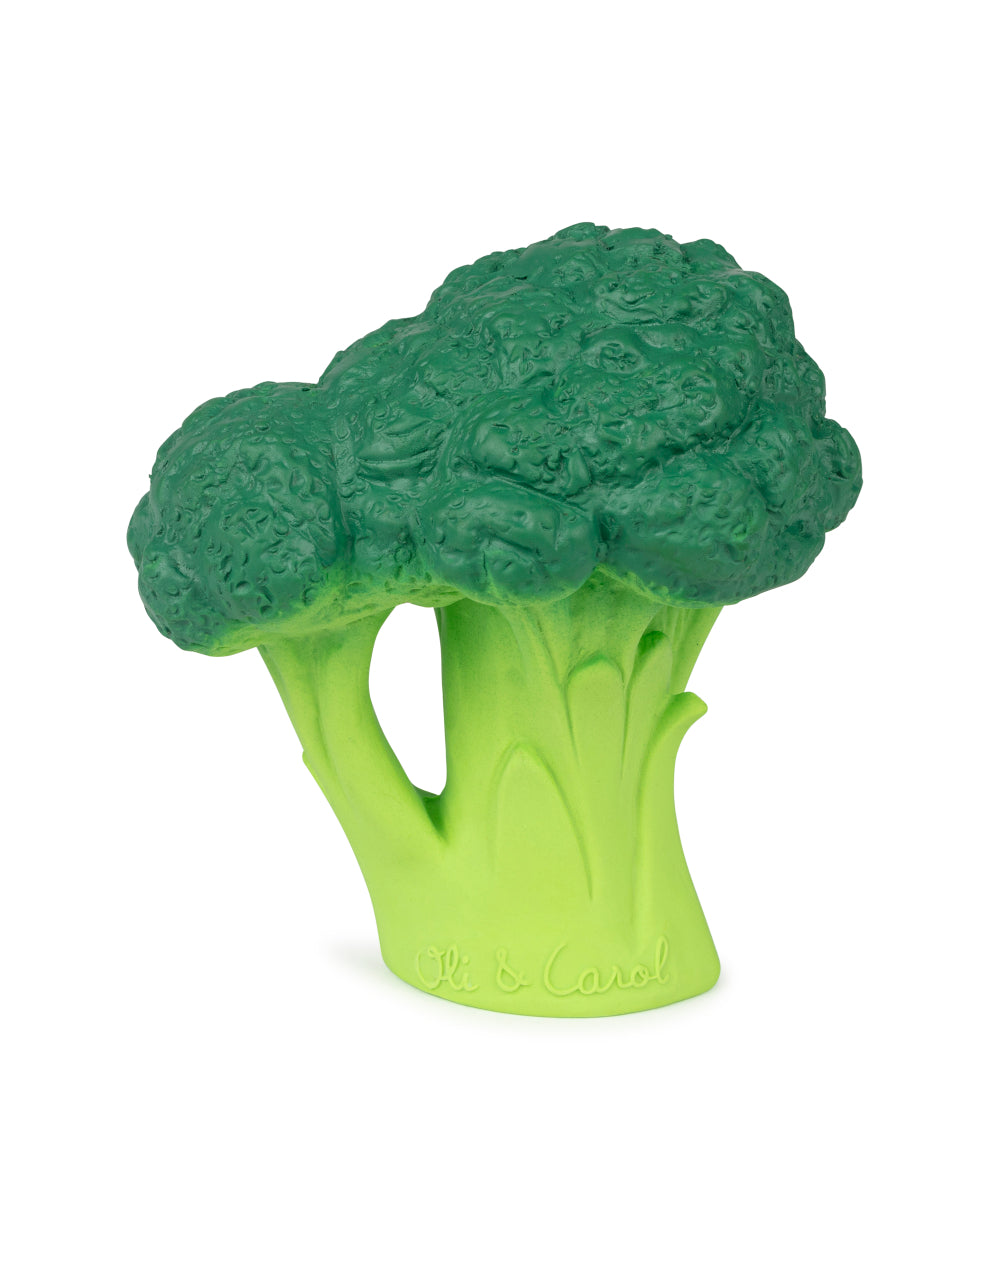 oli&carol natural rubber toy Brucy The Broccoli